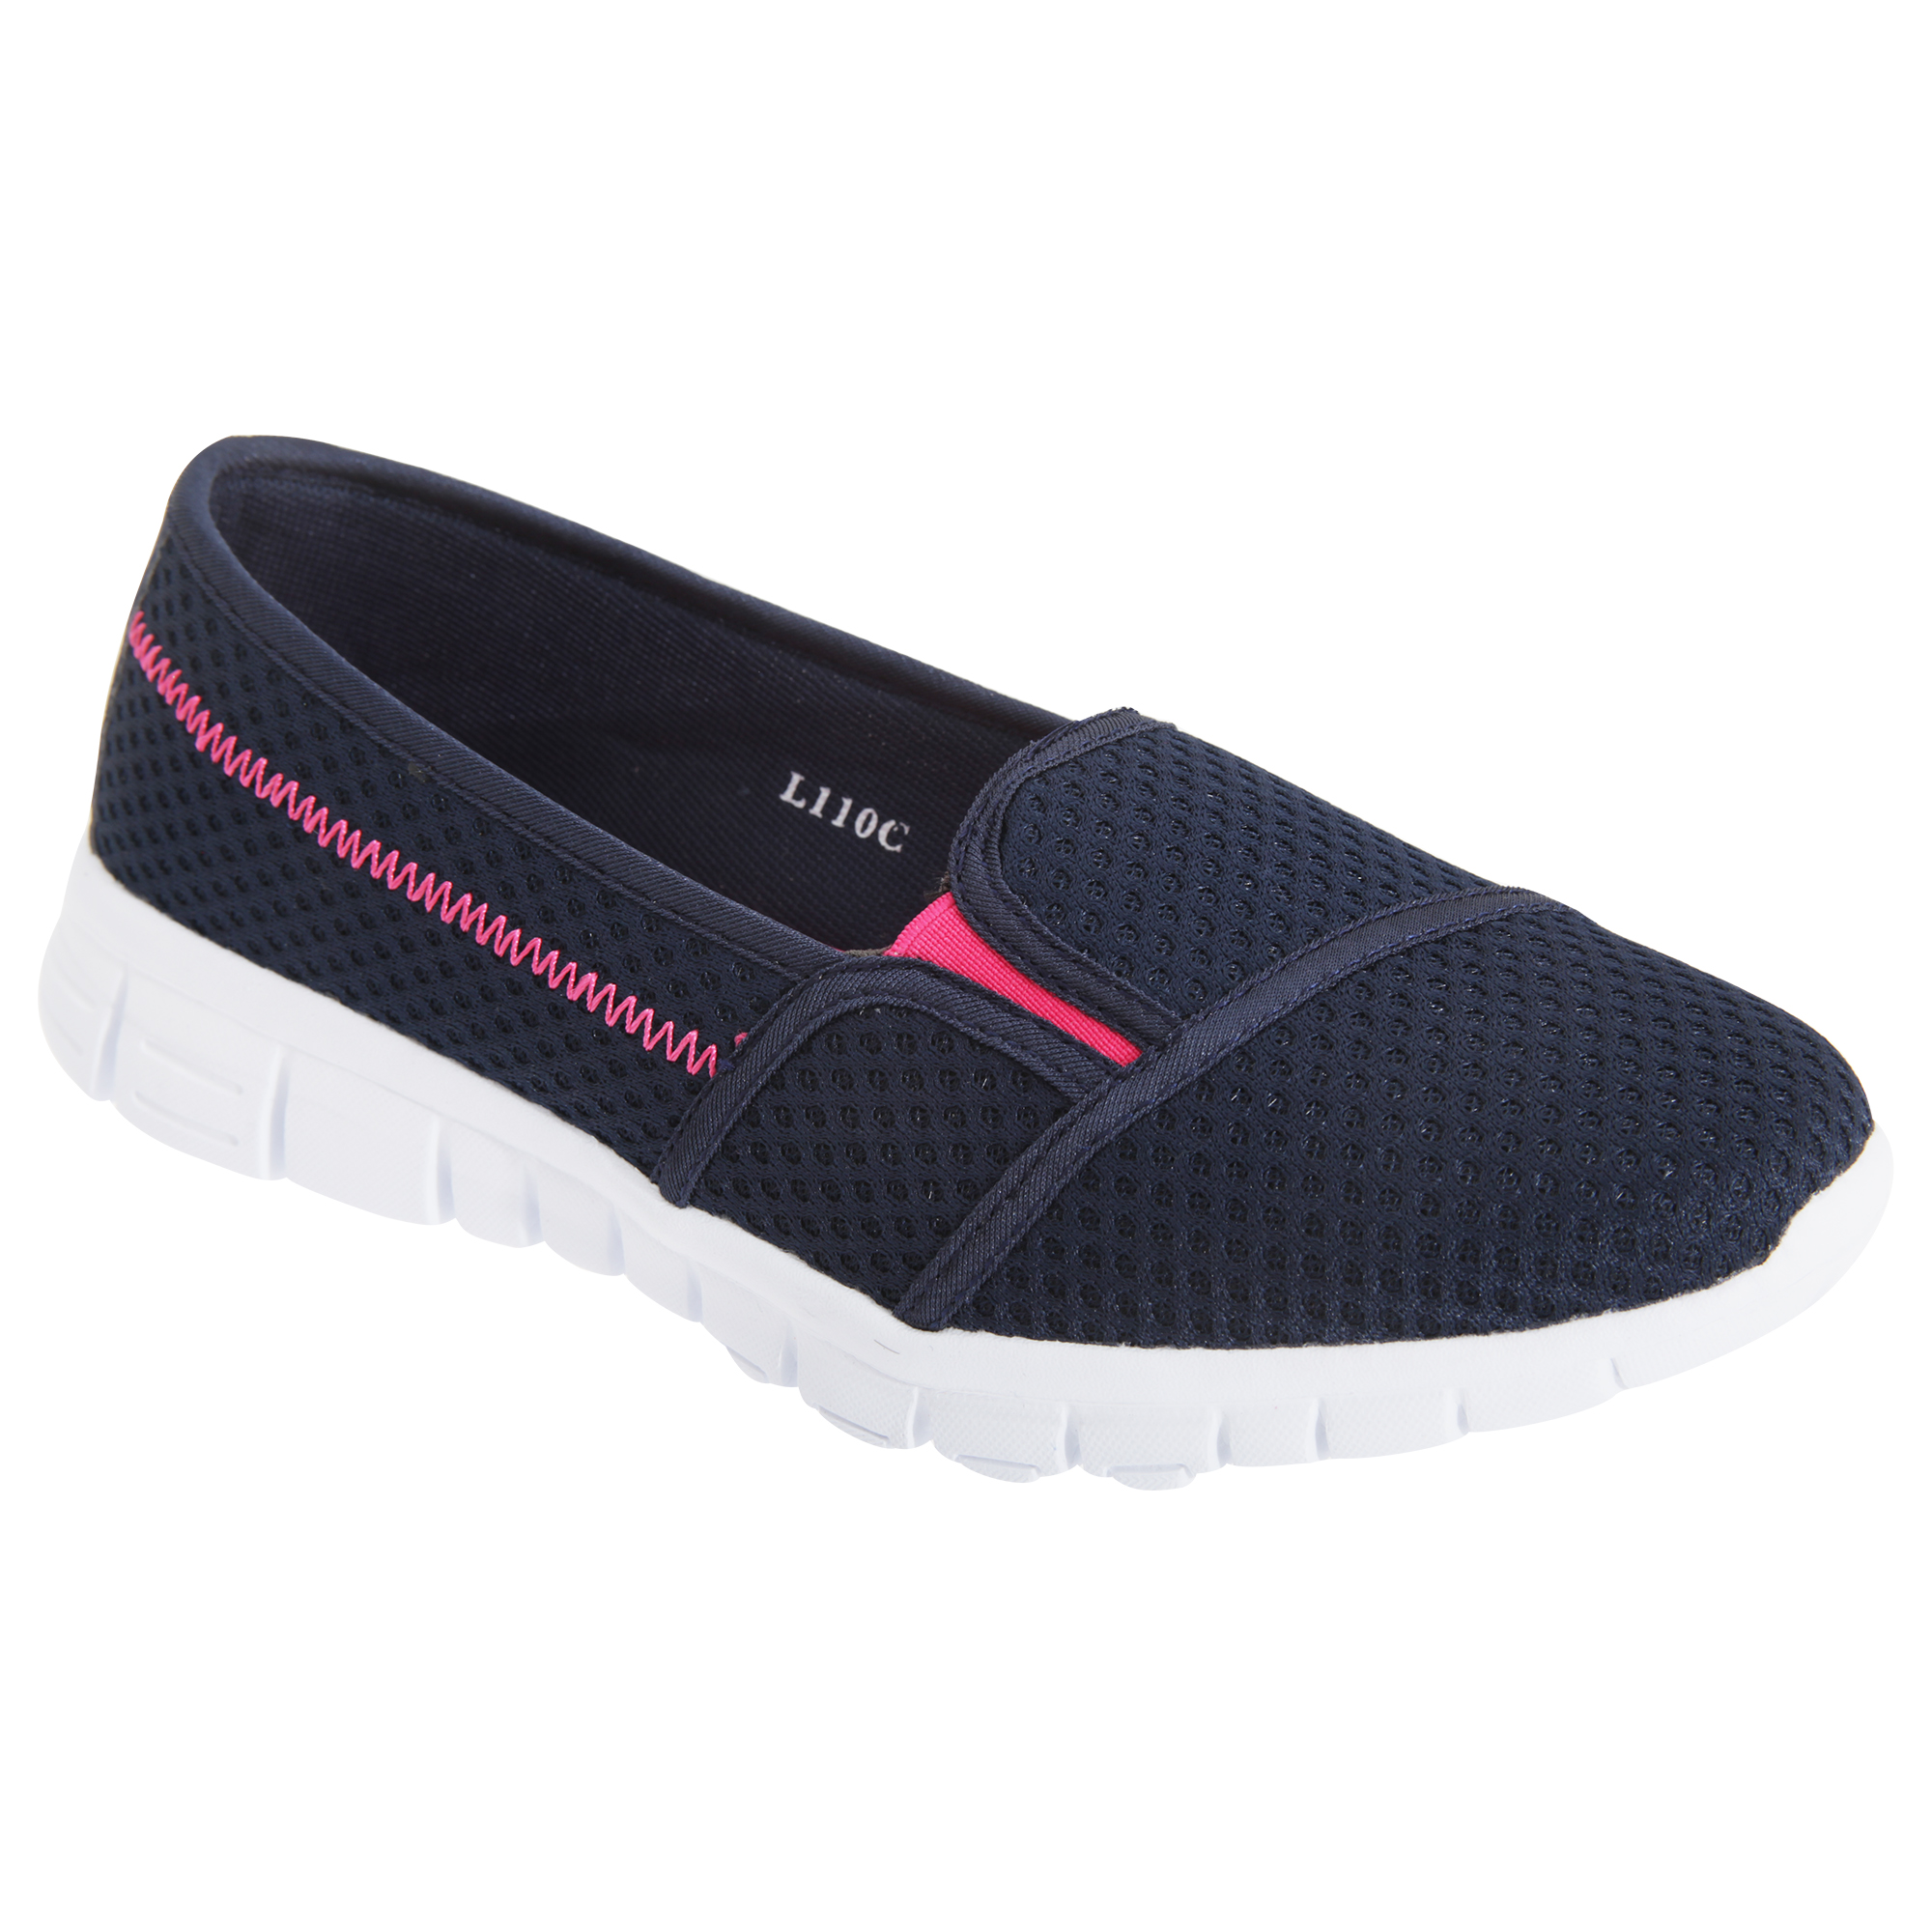 Faded Glory Memory Foam Womens Flats Shoes